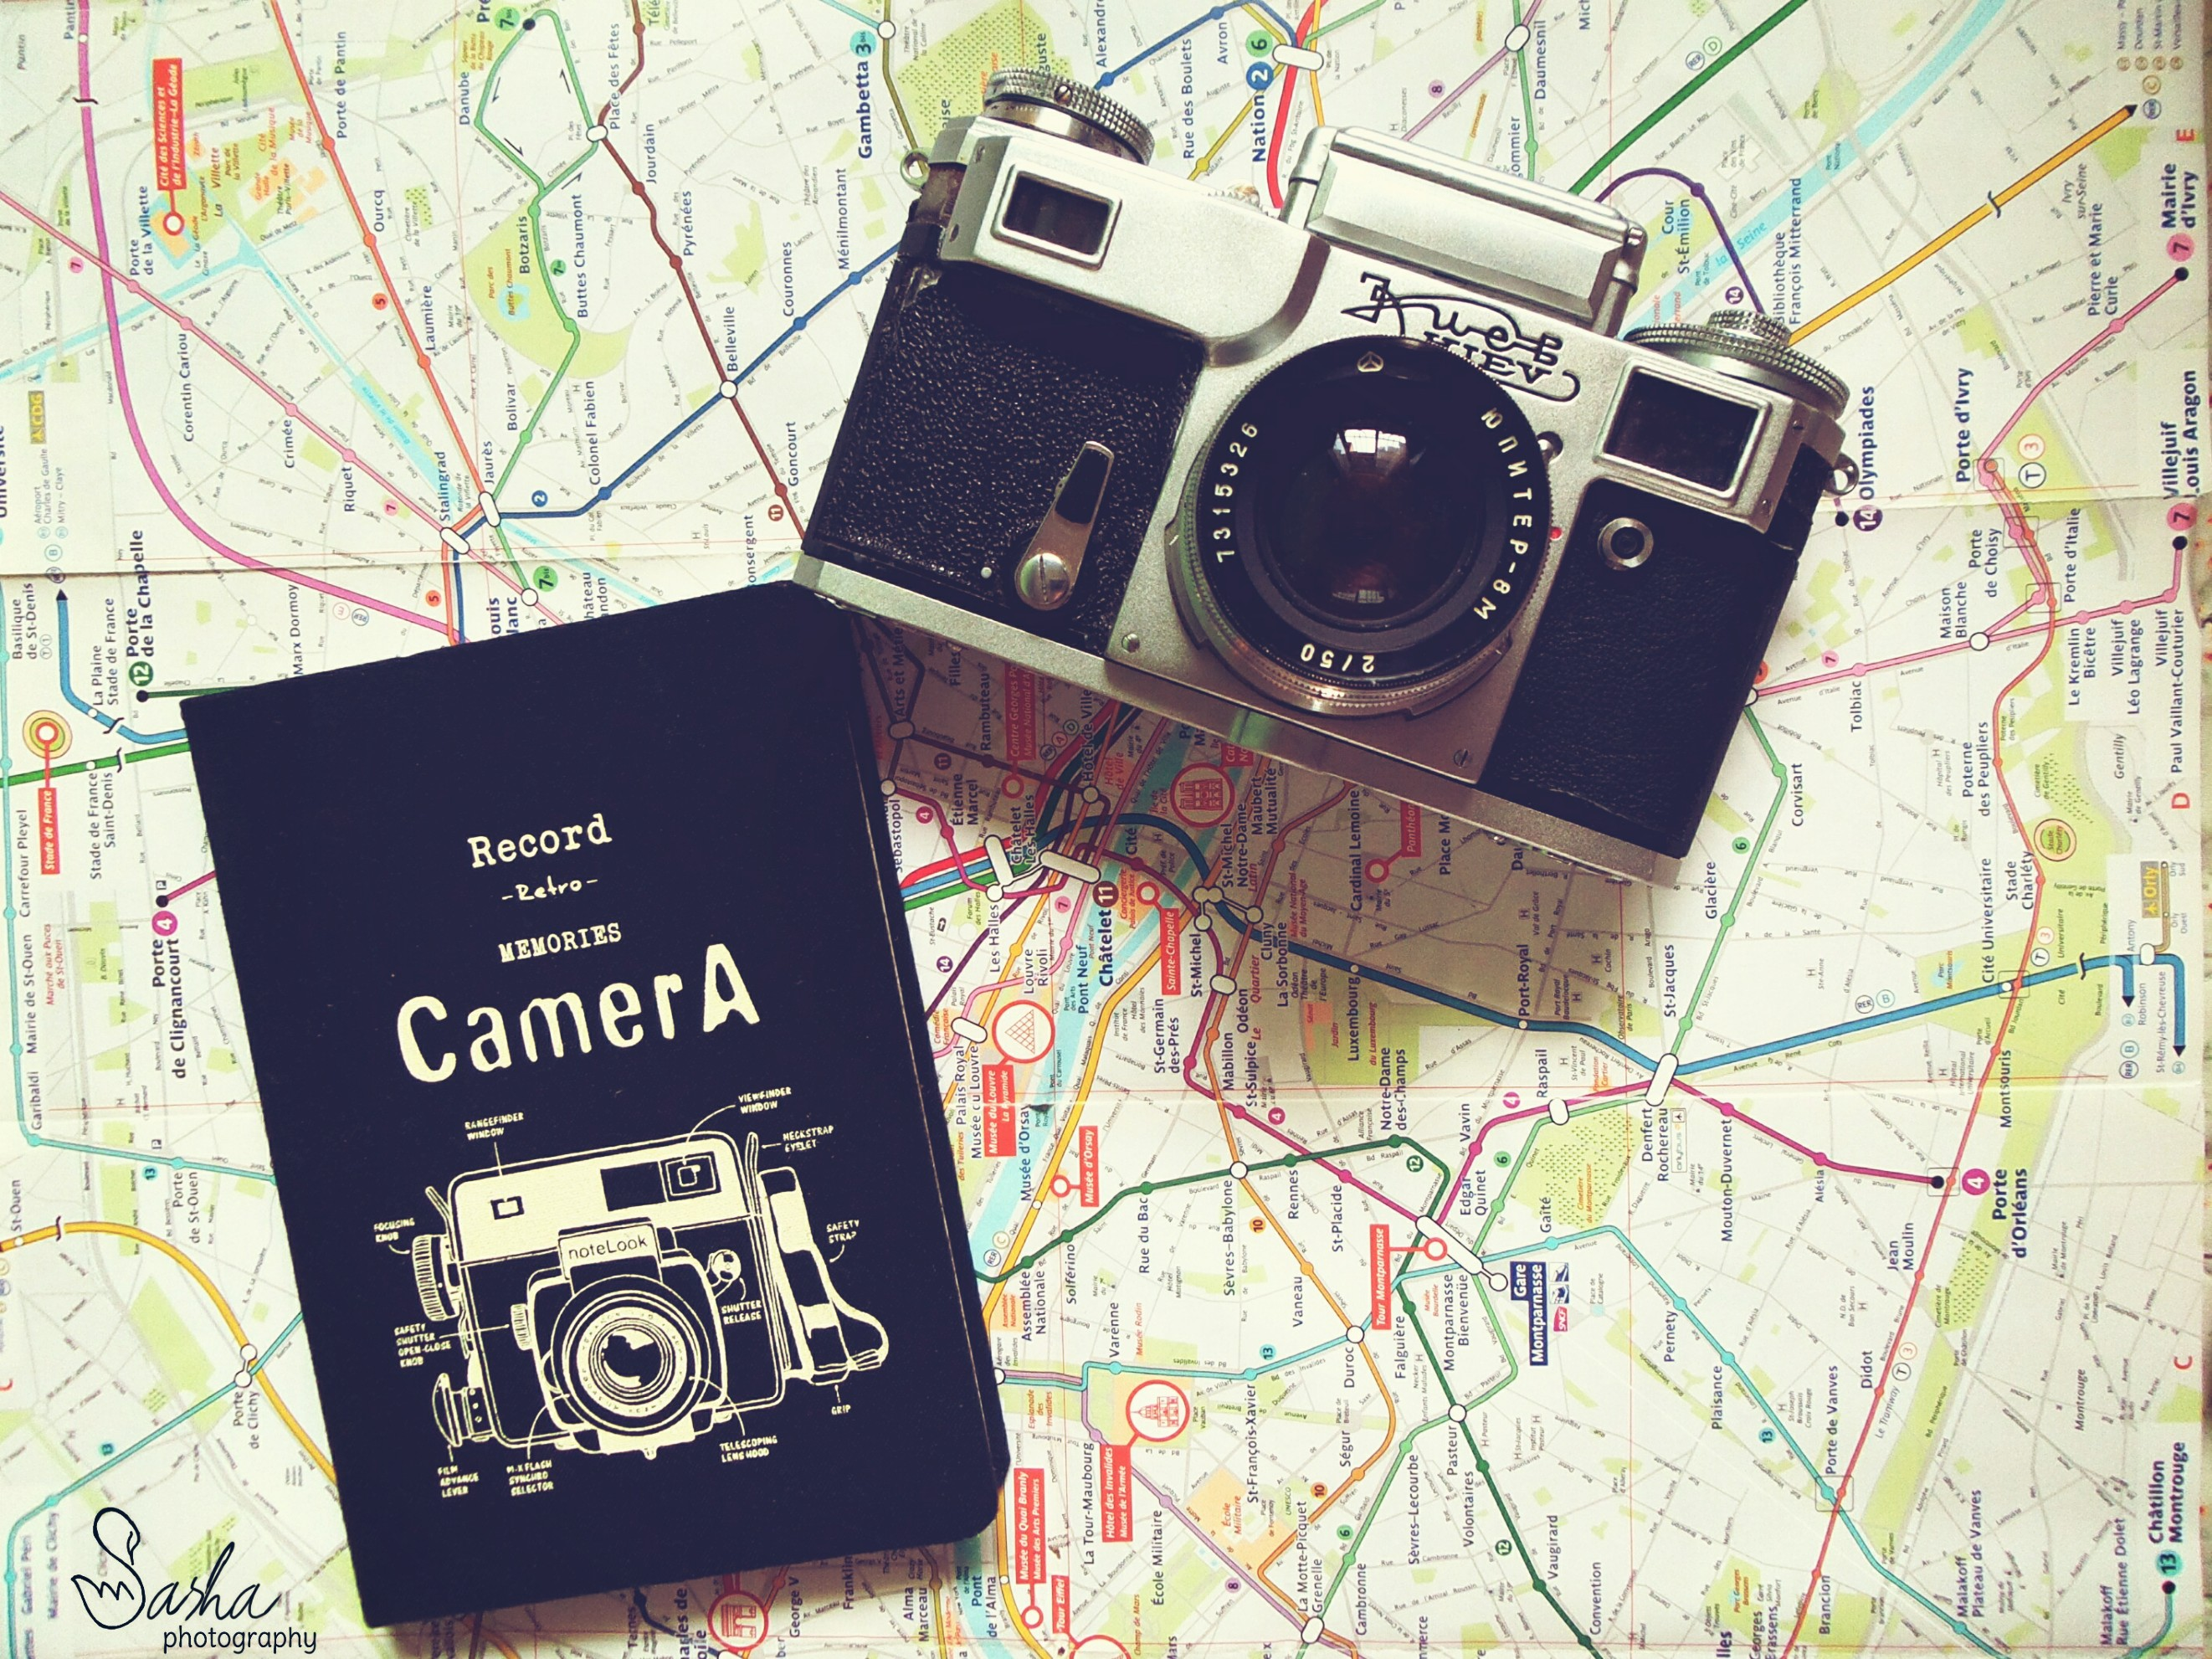 Map Notebook and Camera - Travel Photography by Sashavladimer on PicsArt